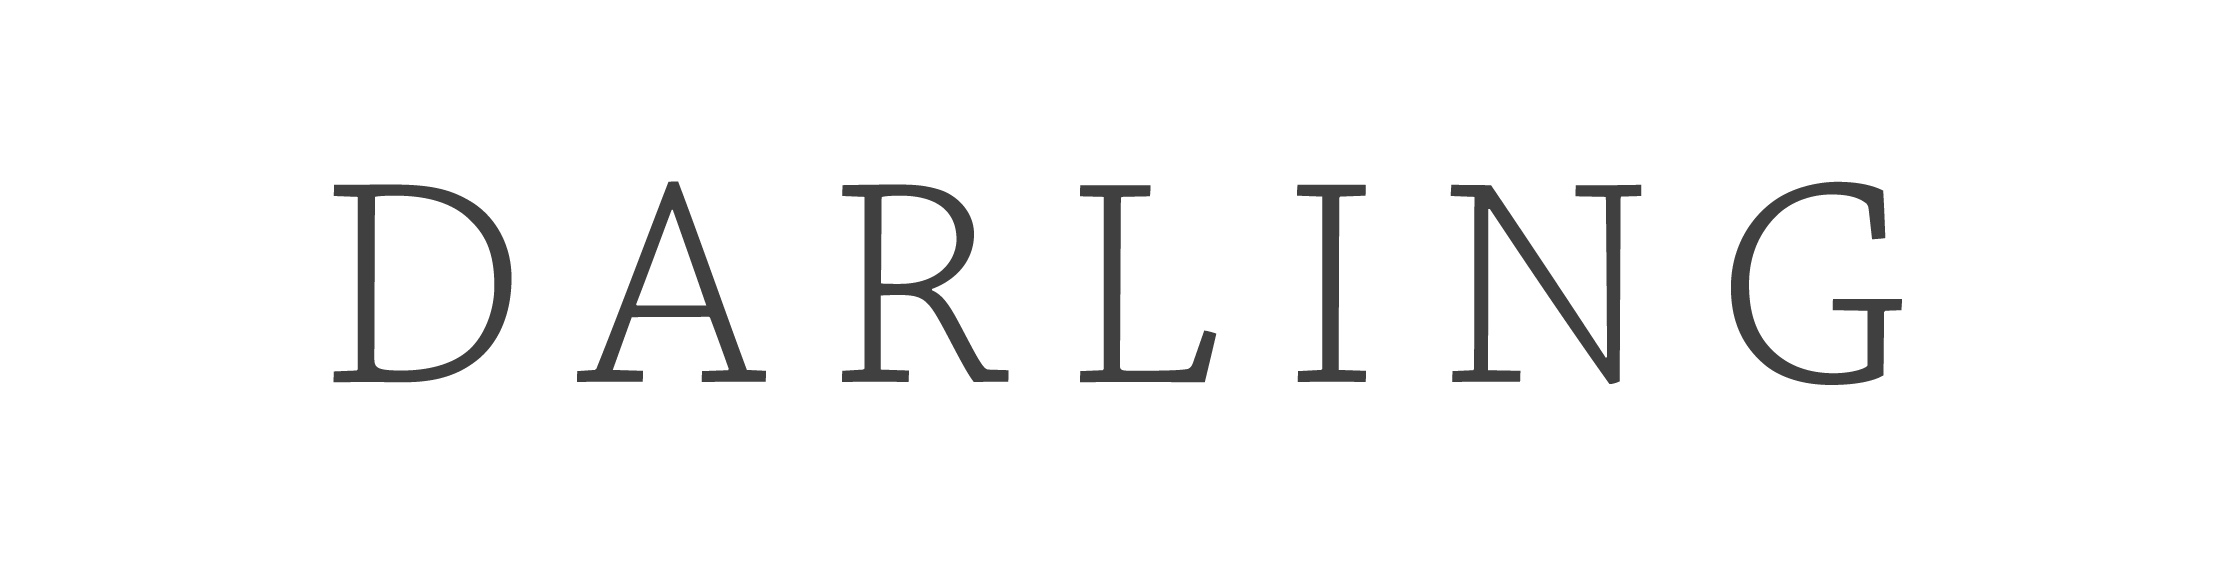 DARLING_LOGO_BLACK (1).png